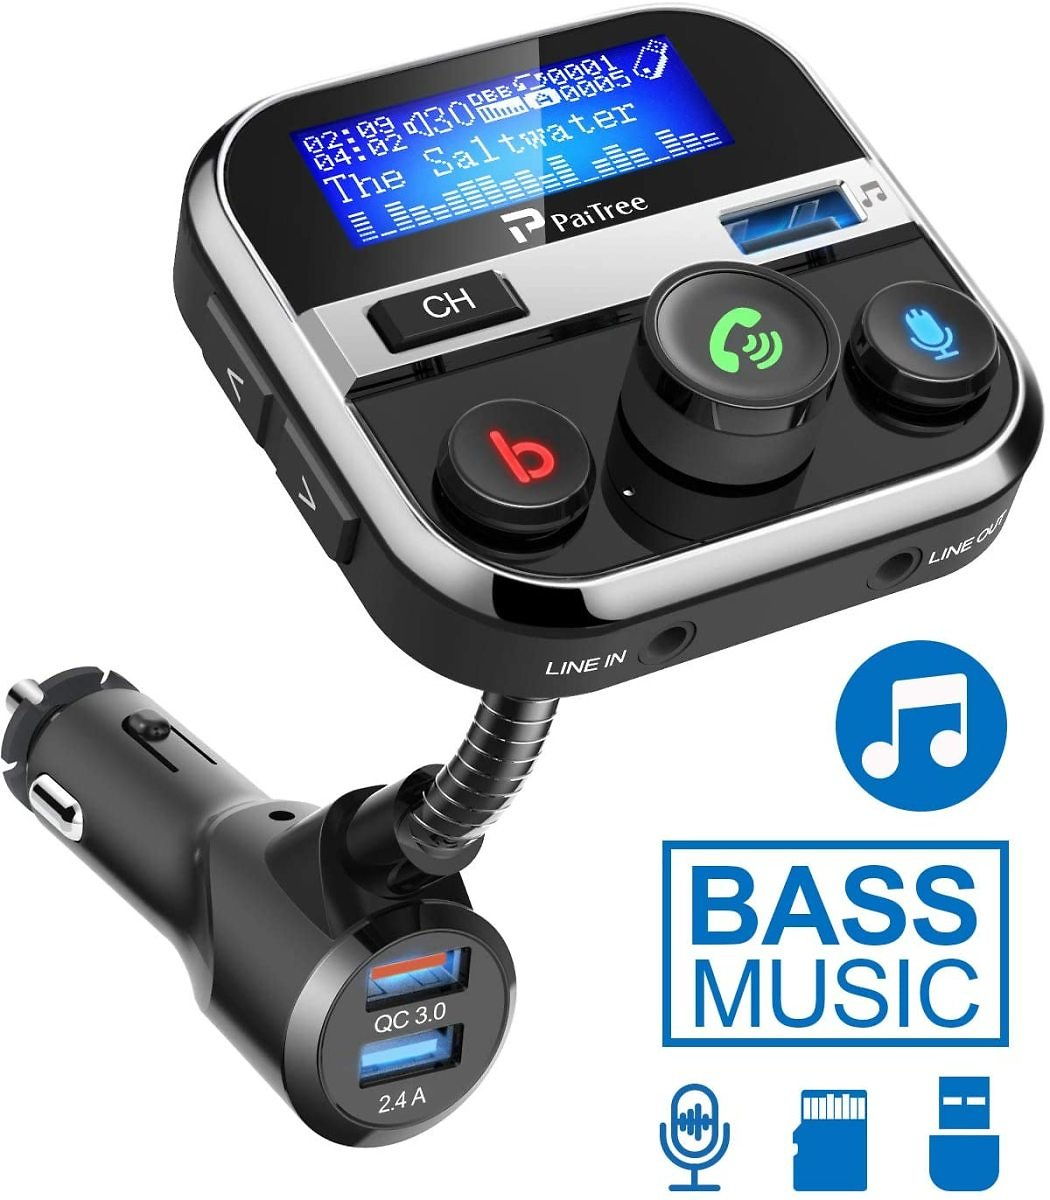 Roll Over Image to Zoom in Bluetooth FM Transmitter for Car, PaiTree Car Adapter with Super Bass Stereo Sound, QC3.0 Fast Charg